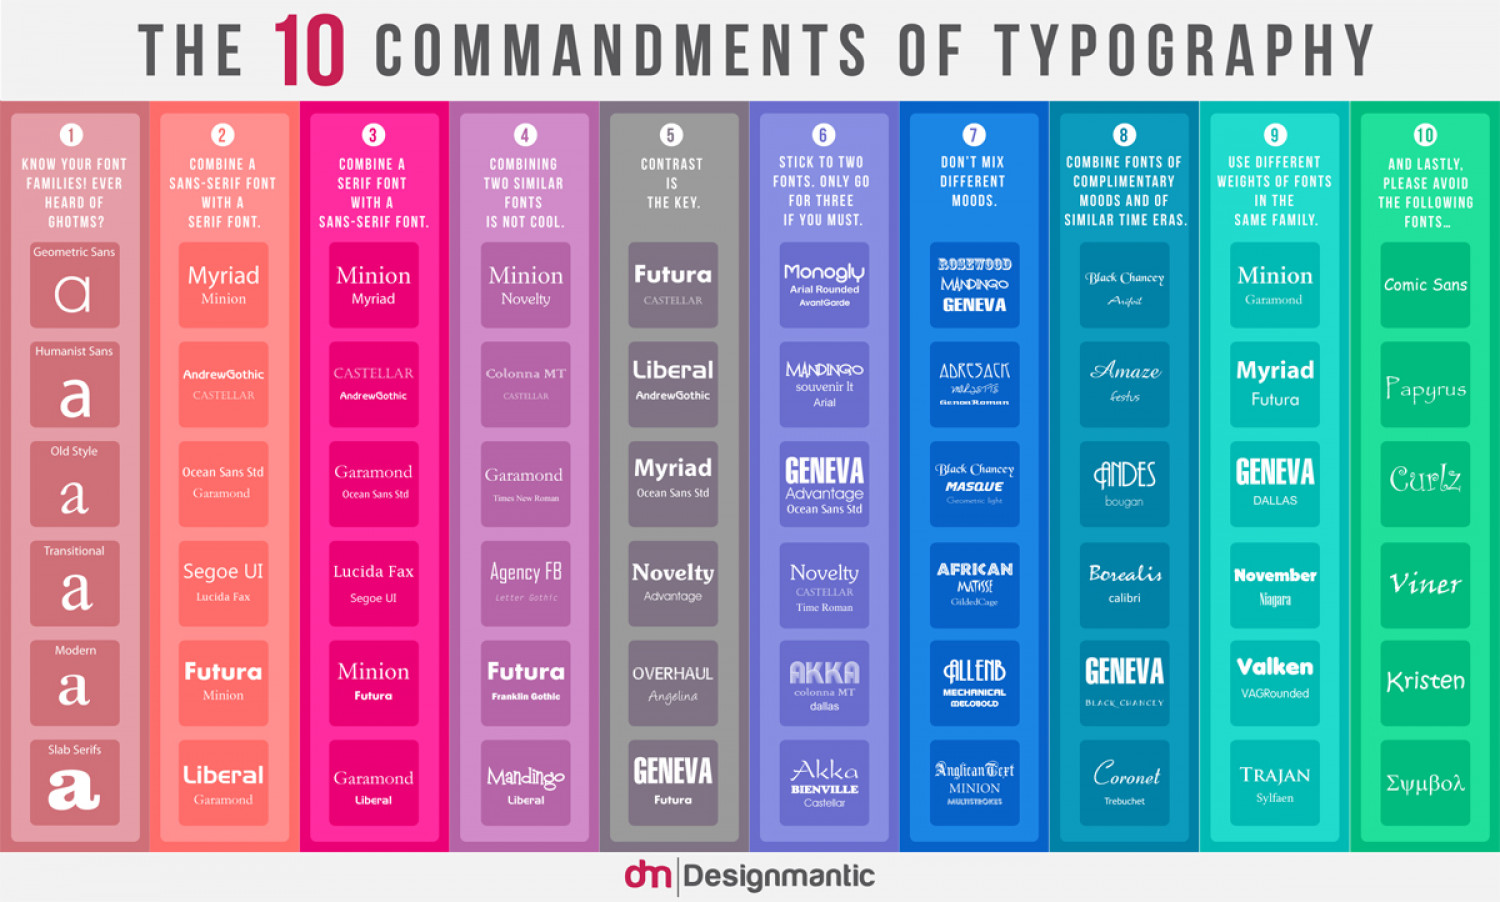 http://visual.ly/10-commandments-typography